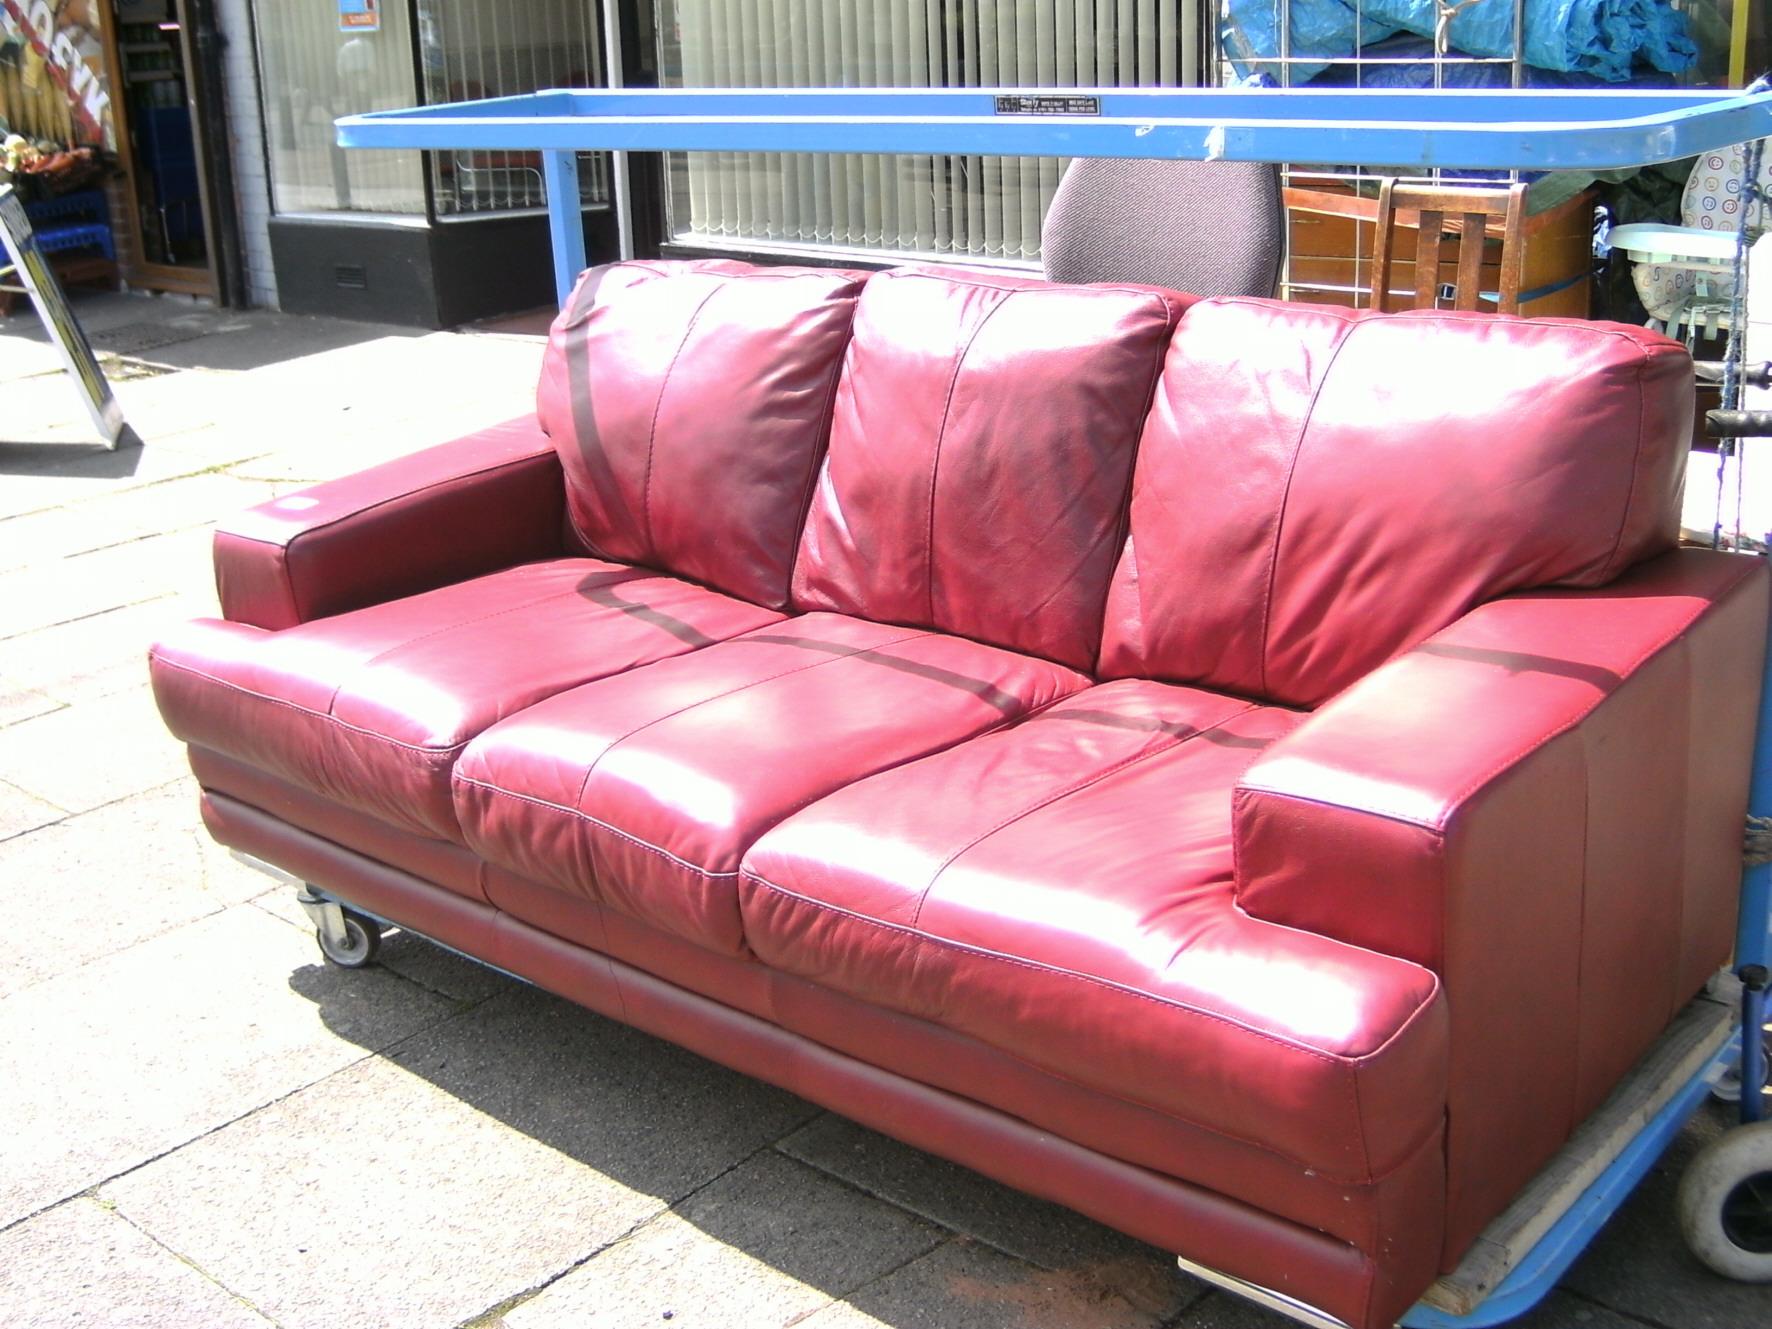 House clearance coventry nuneaton bedworth steptoes for Second hand sofas